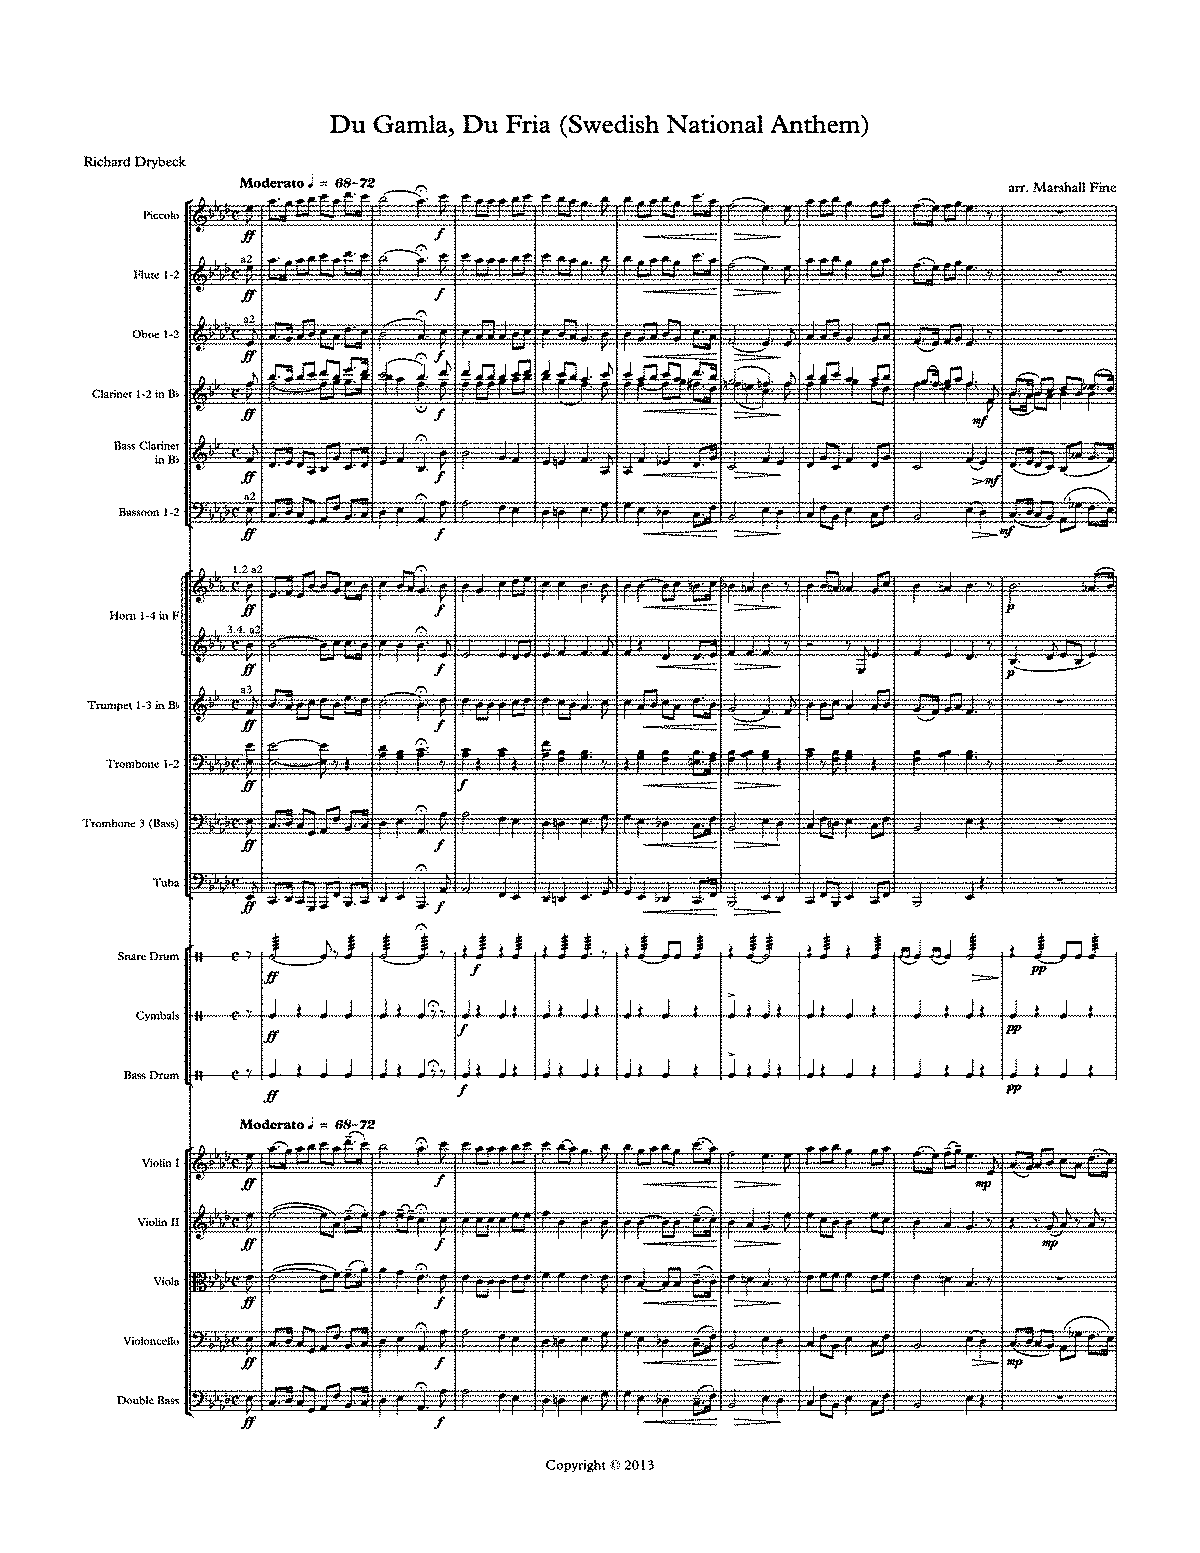 PMLP550717-Du Gamla, Du Fria (Swedish National Anthem) - score and parts.pdf